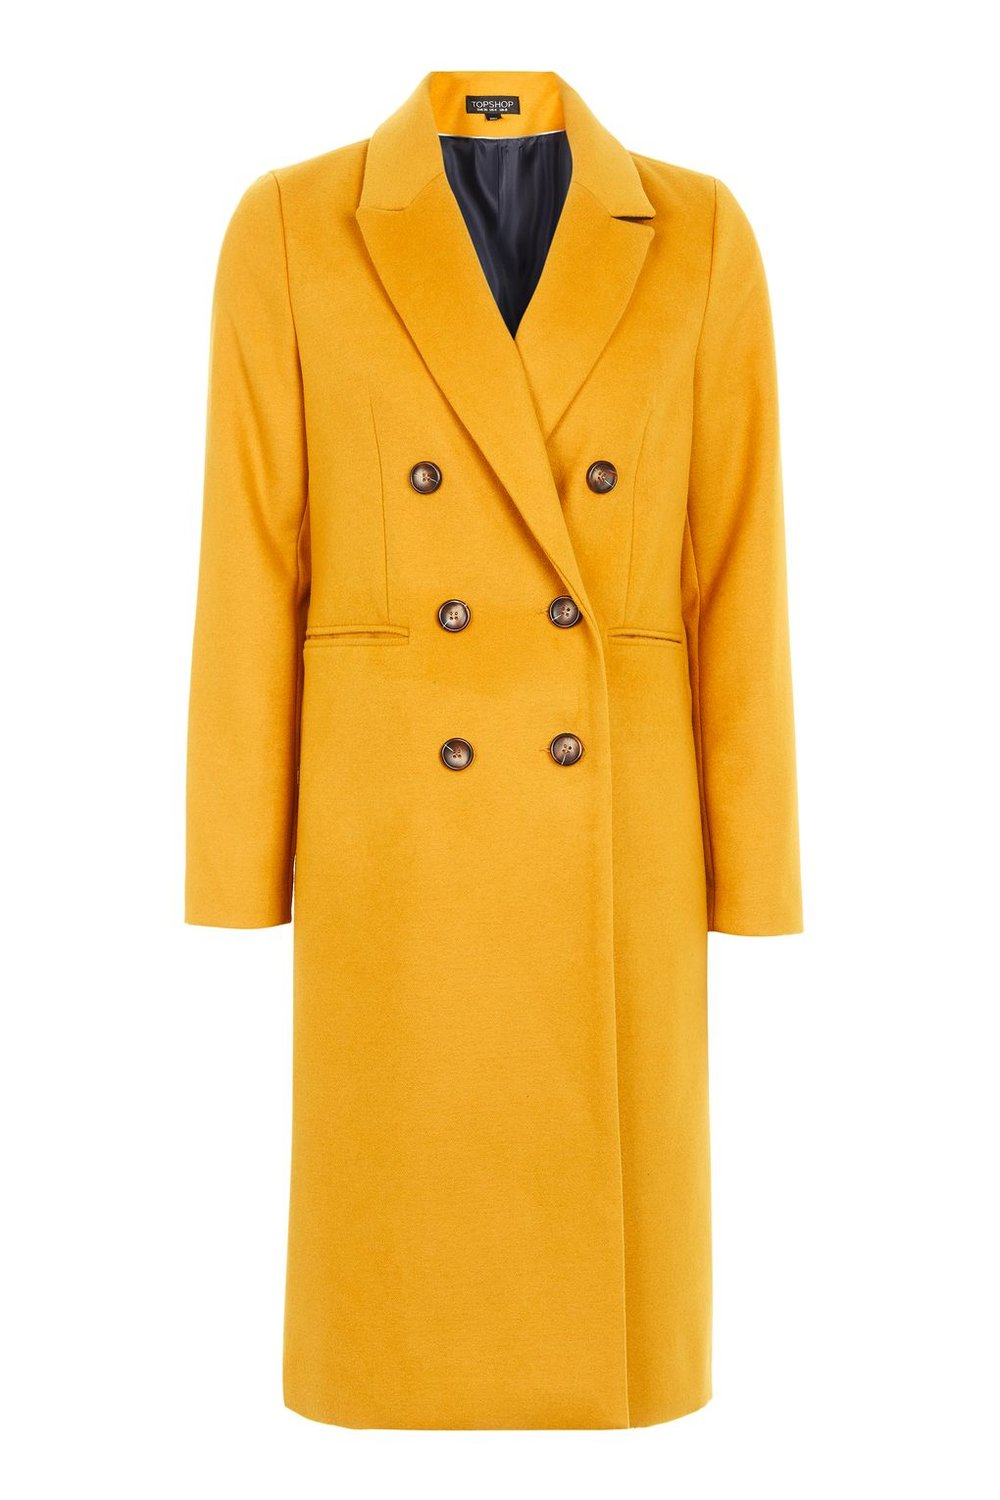 TOPSHOP LONGLINE YELLOW BREASTED COAT